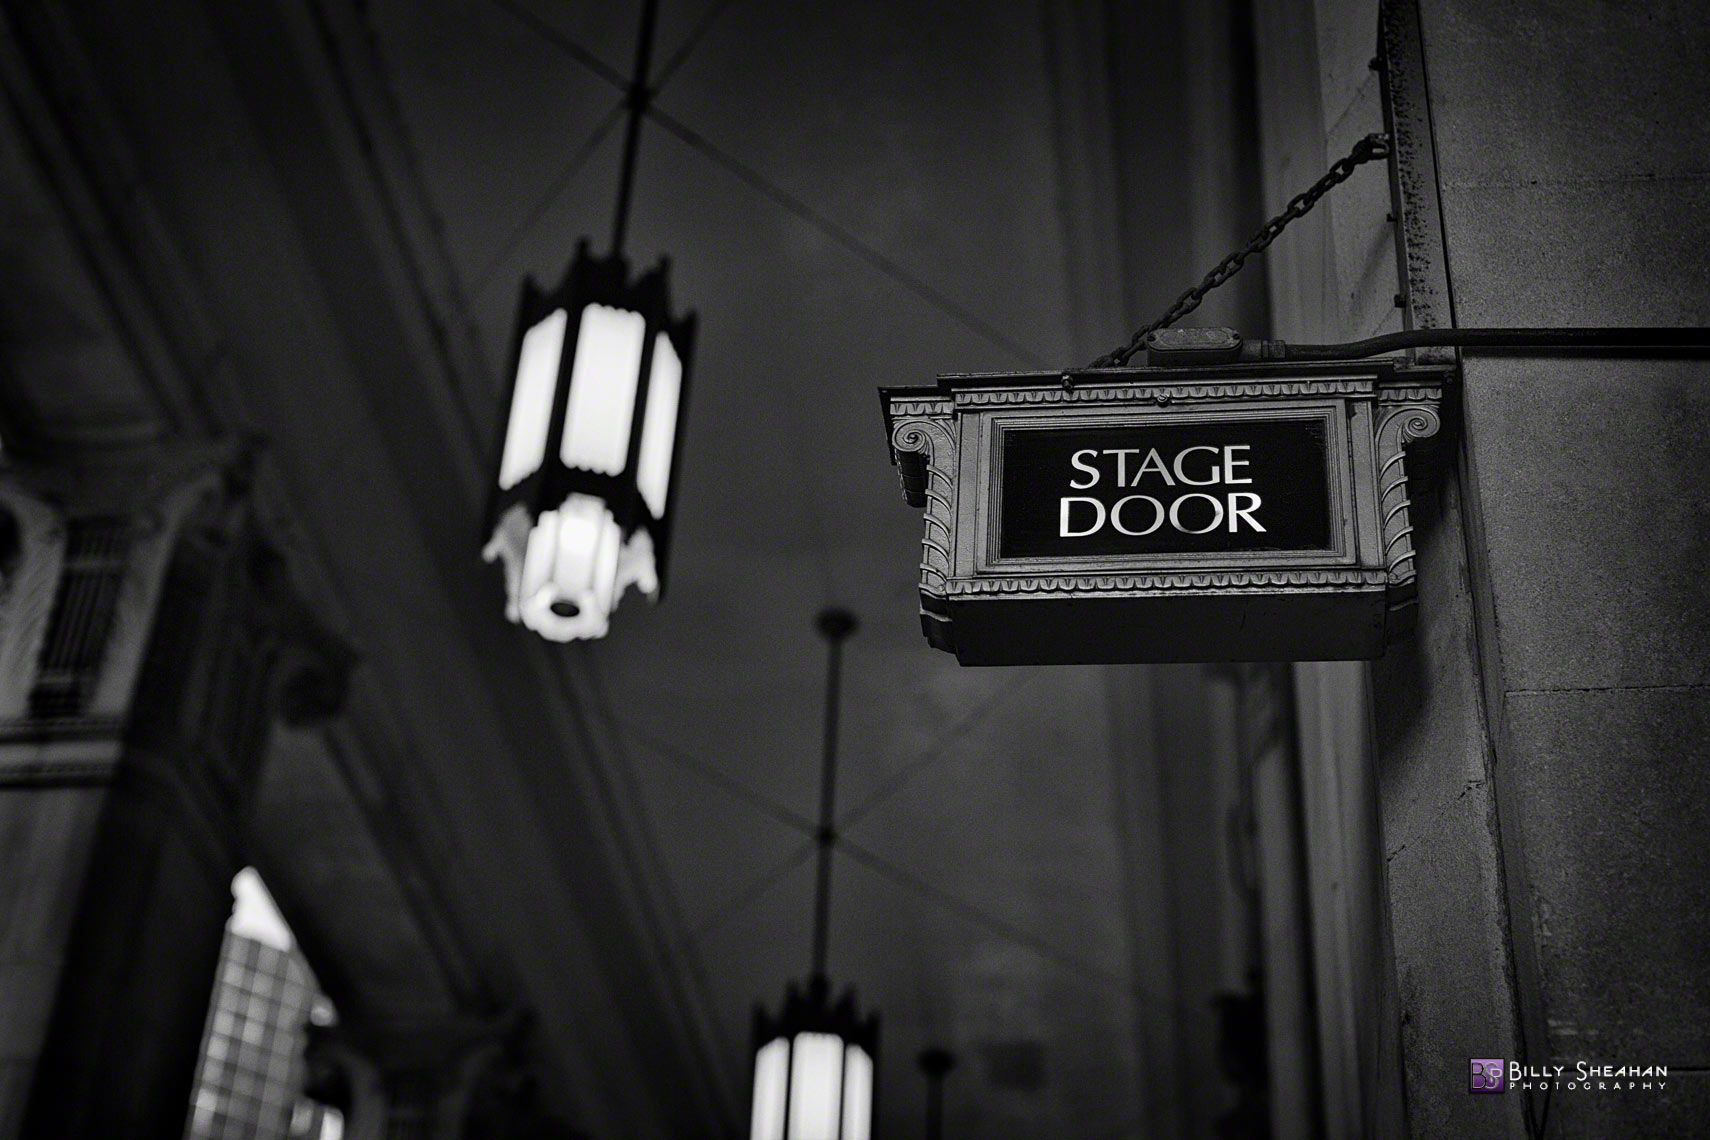 Stage_Door_at_the_Civic_Opera_Building_Chicago__28Dec2013_0042_BW_D